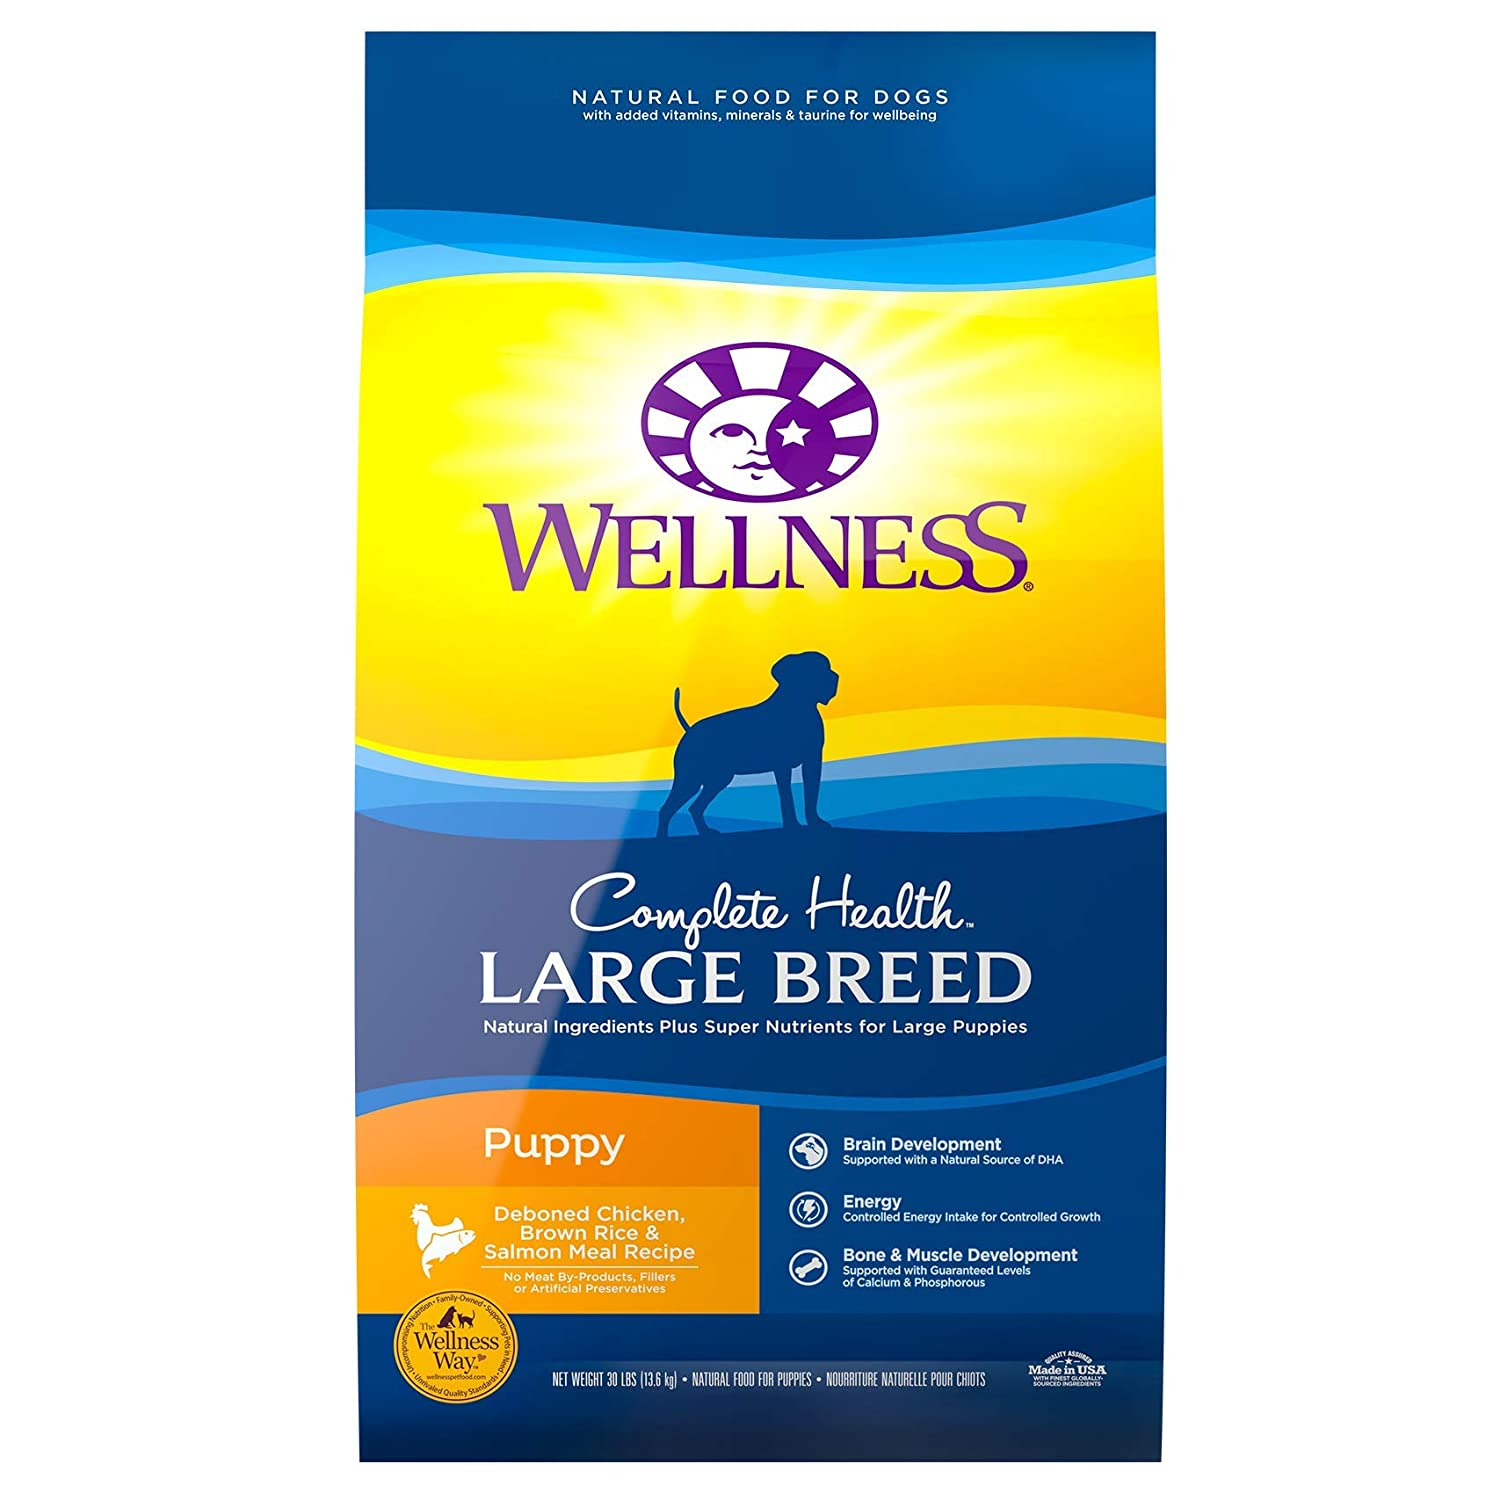 2. Wellness Large Breed Complete Health Puppy